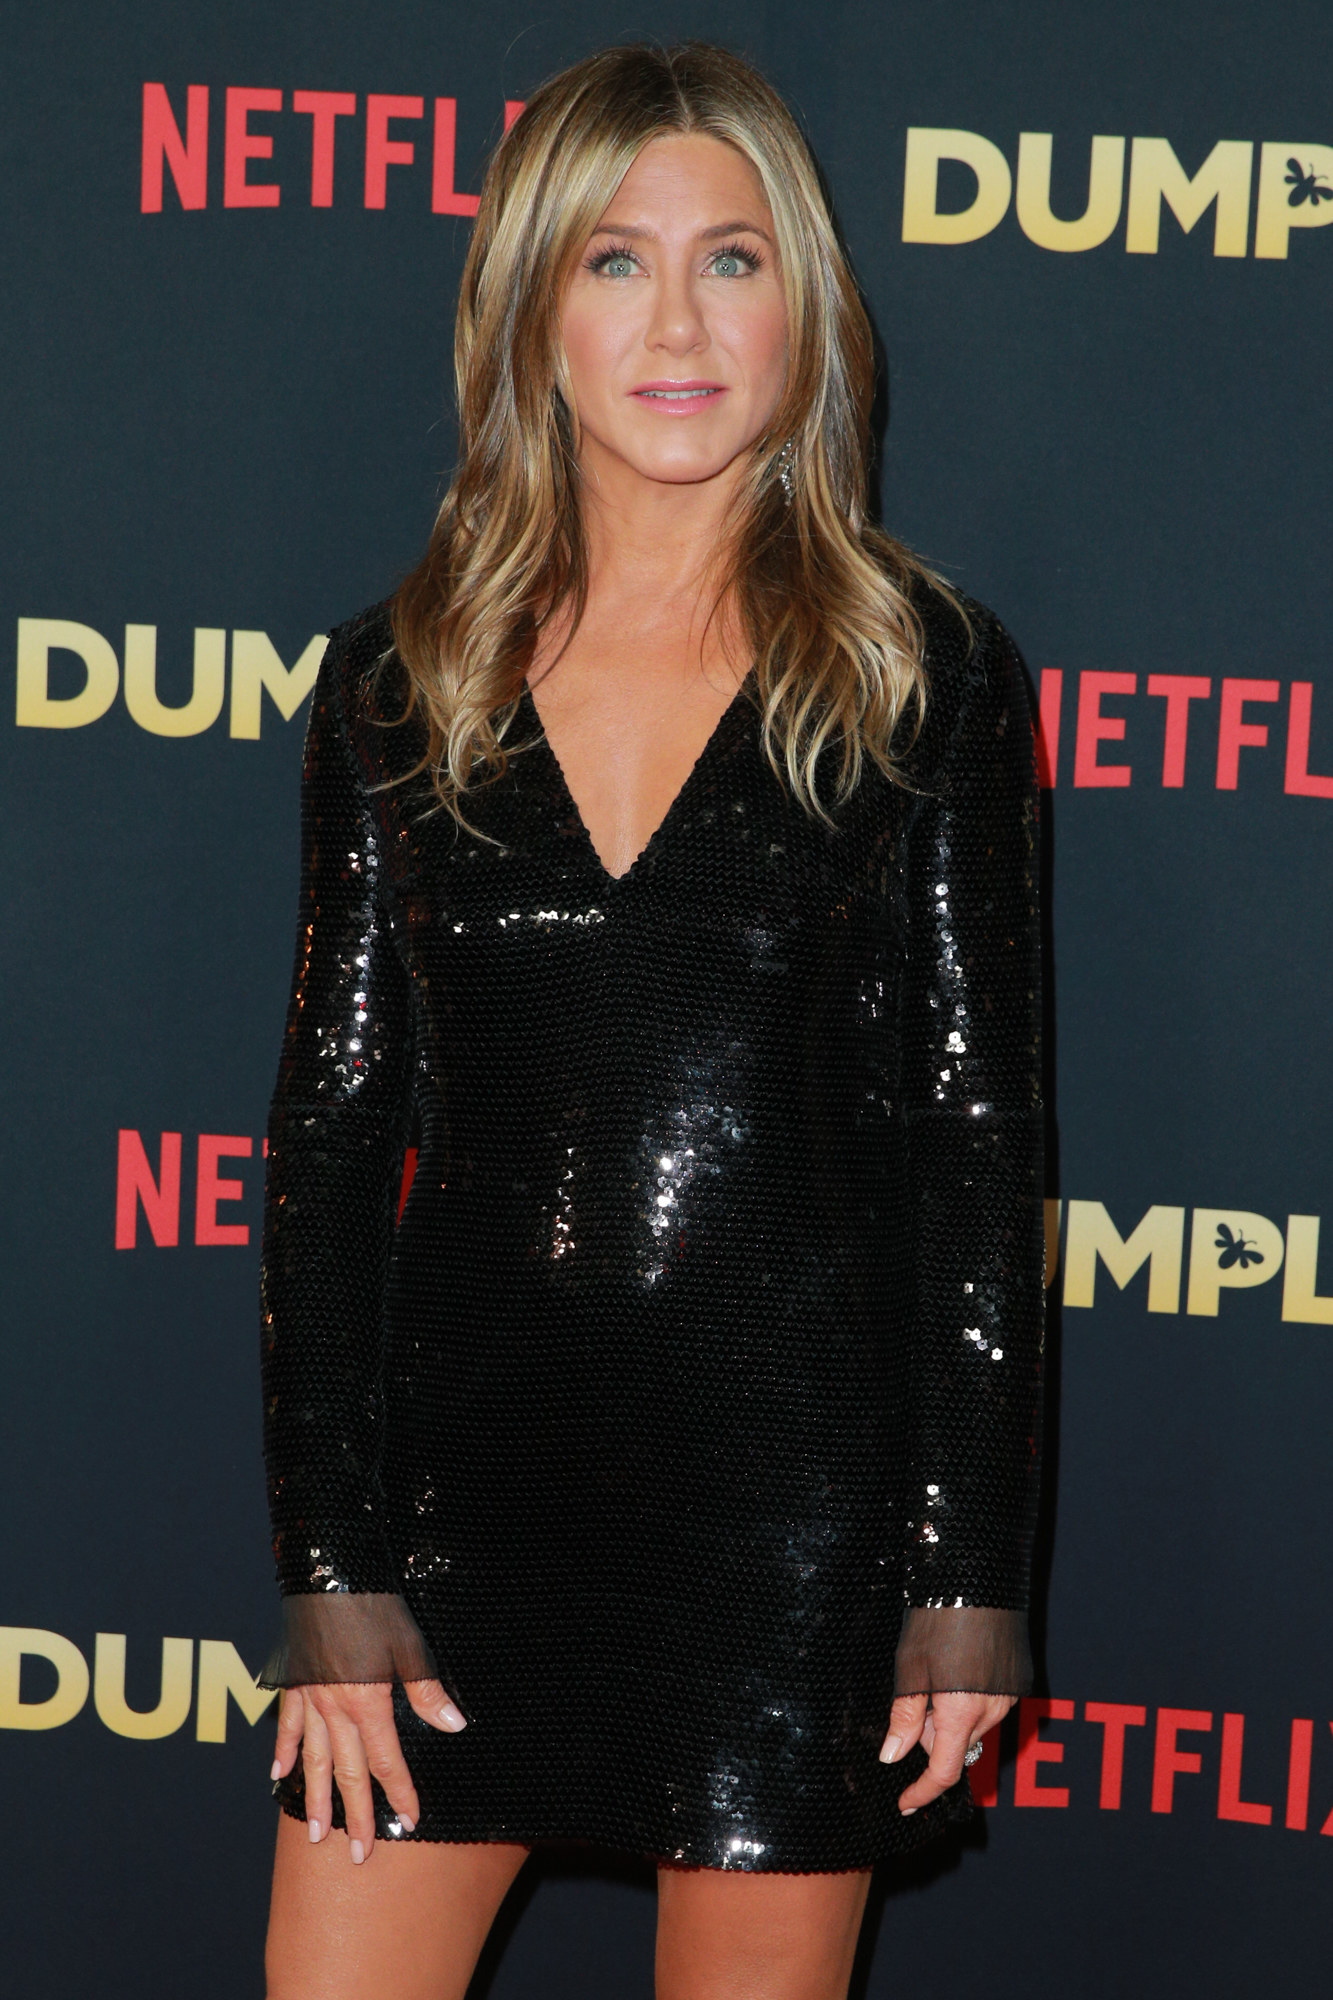 It's a scientific fact that it's impossible to dislike Jennifer Aniston.